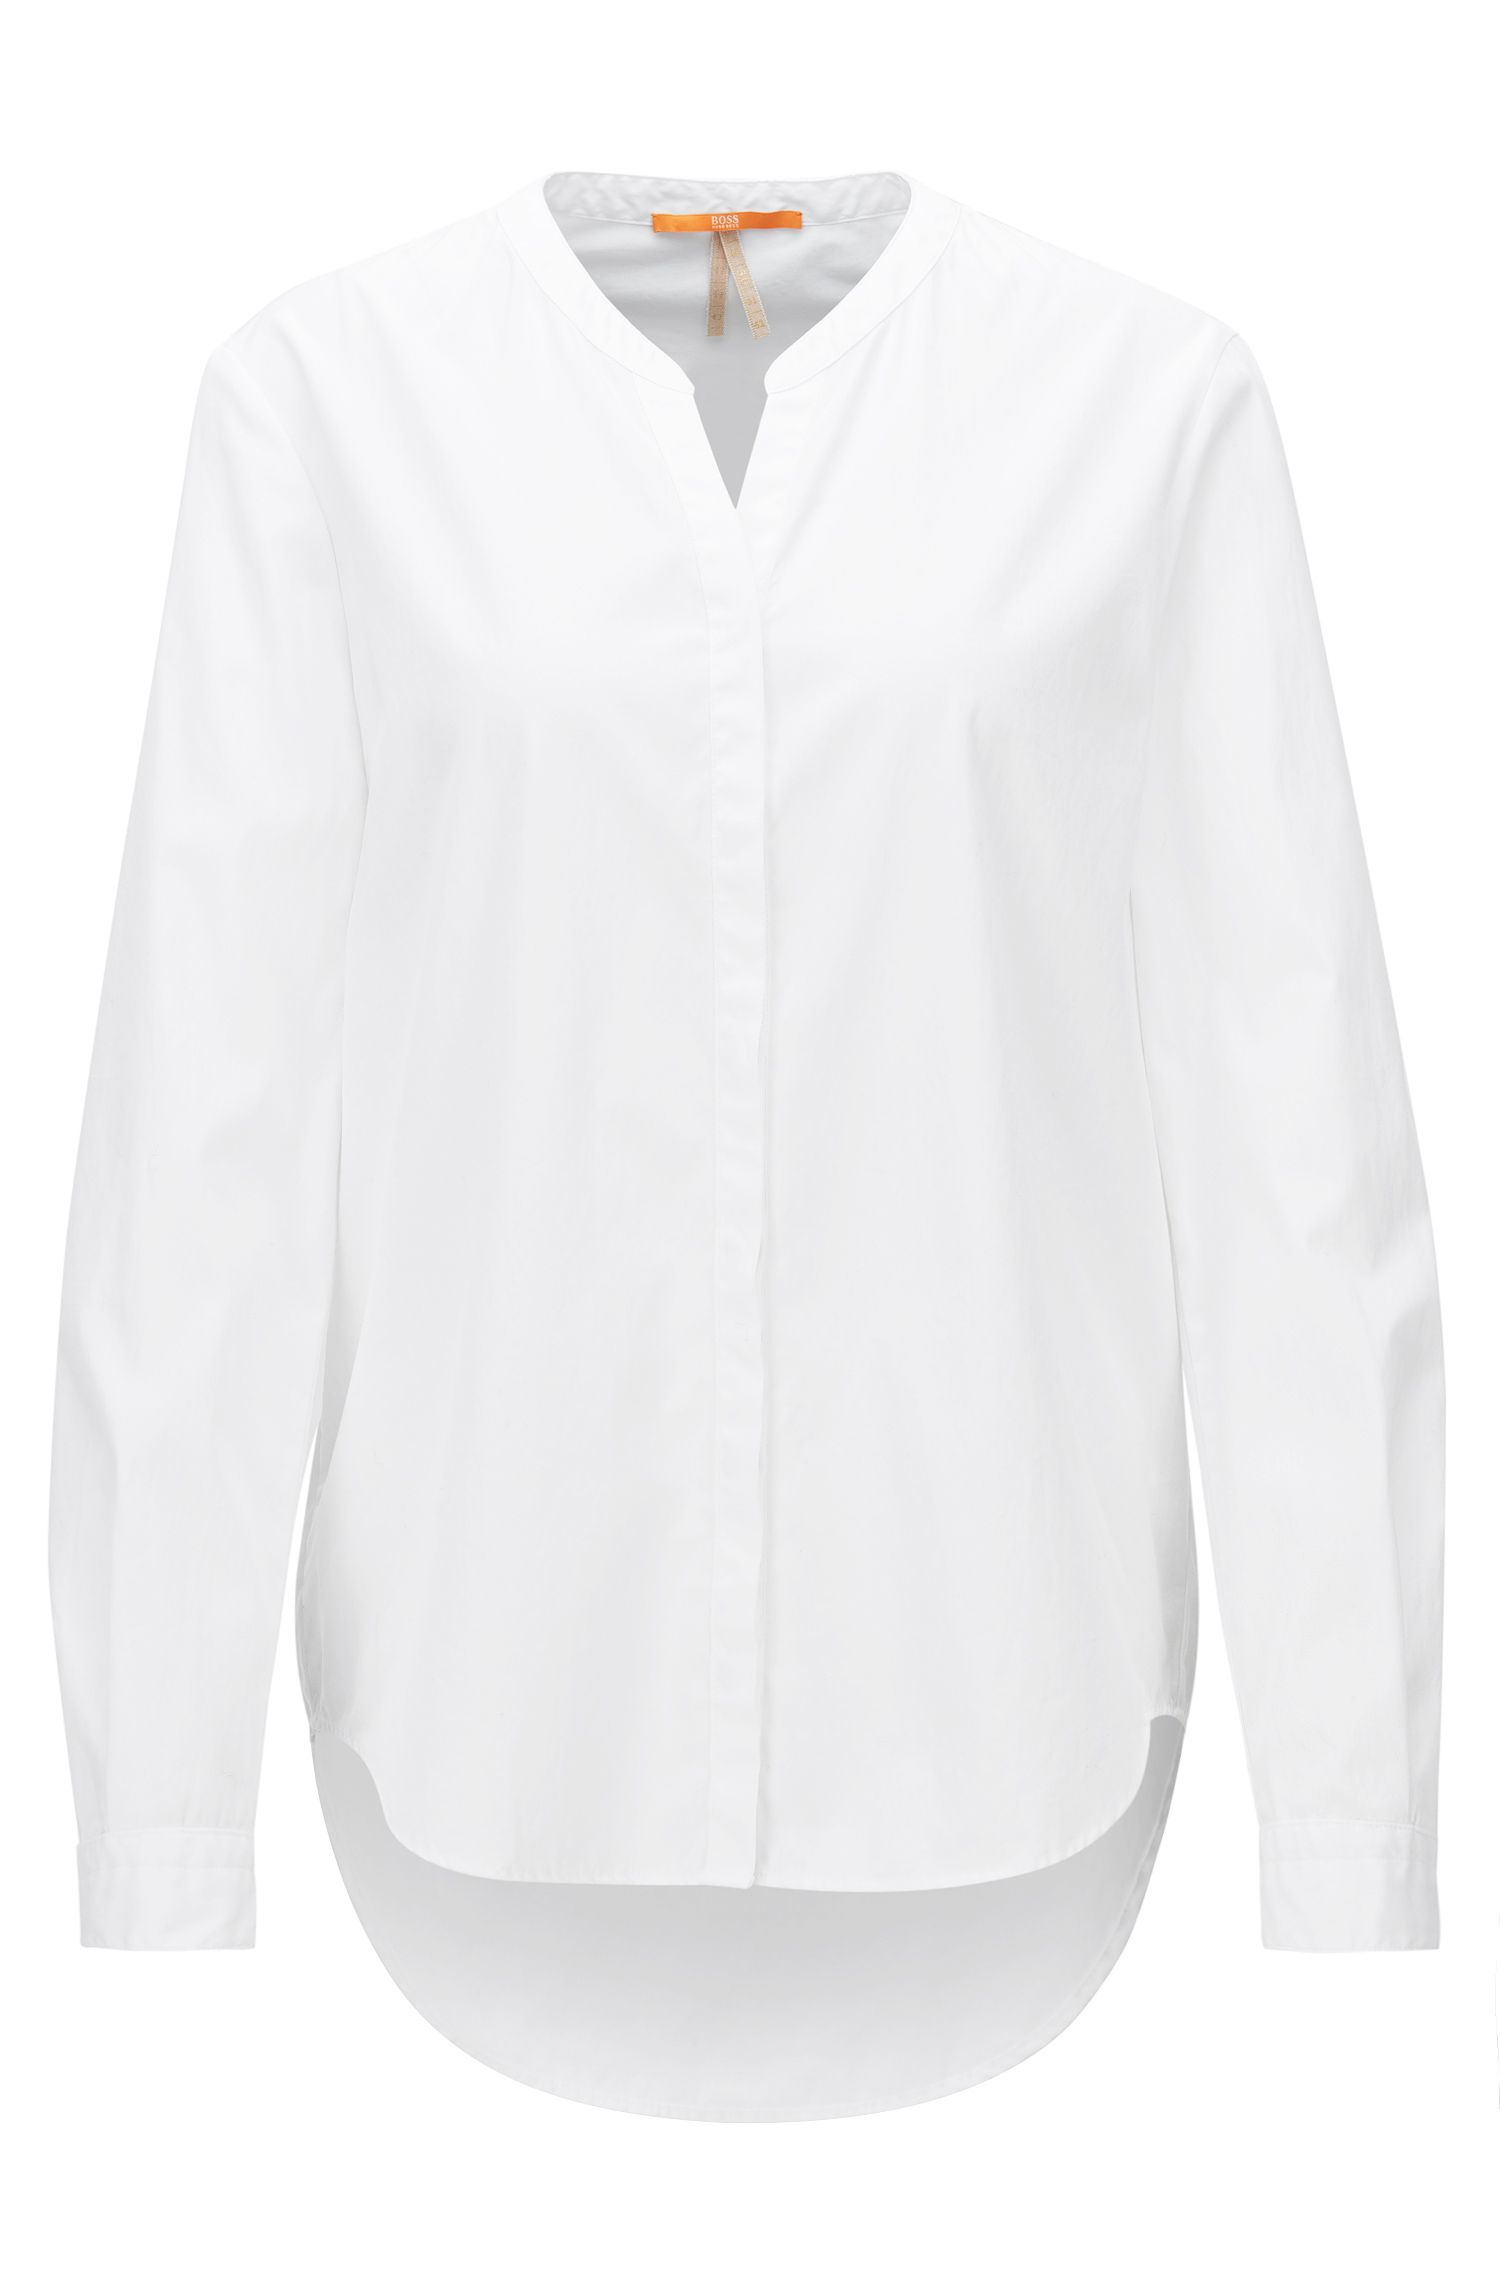 Relaxed-fit cotton shirt with stand collar